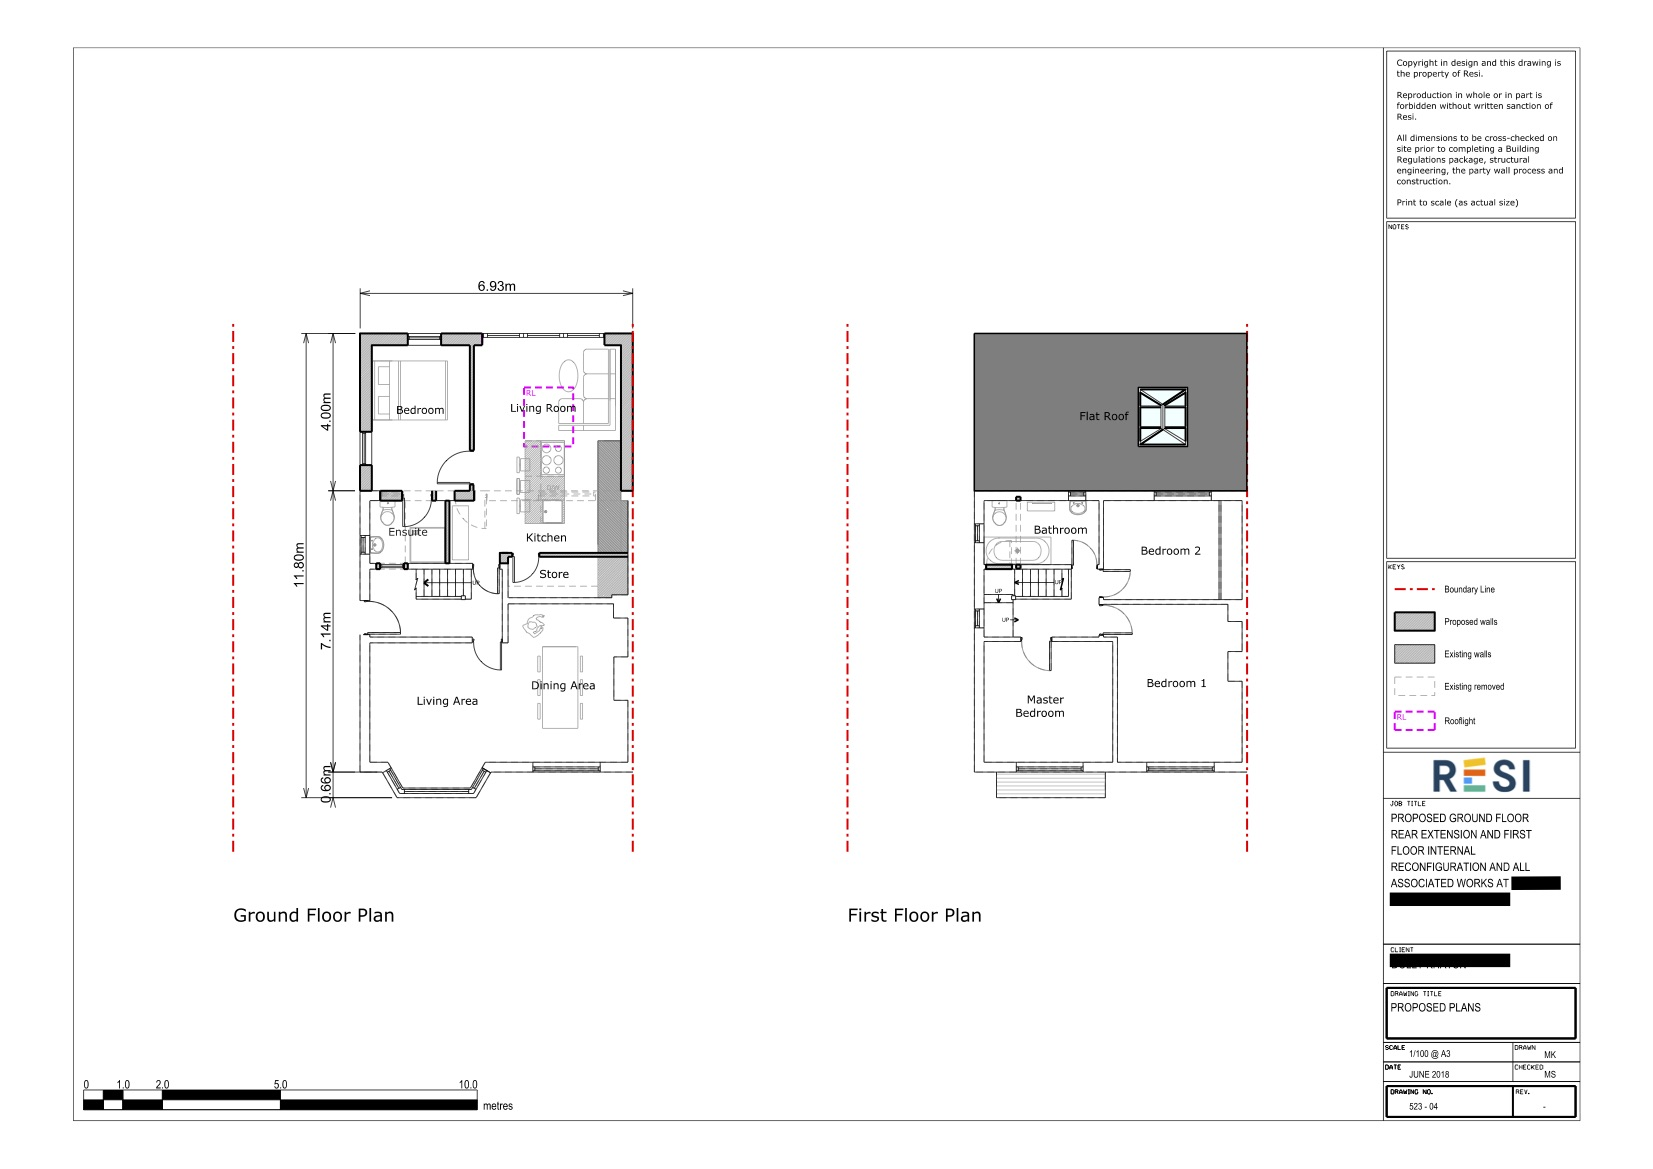 Architectural drawing set 2   ground and first floor plan